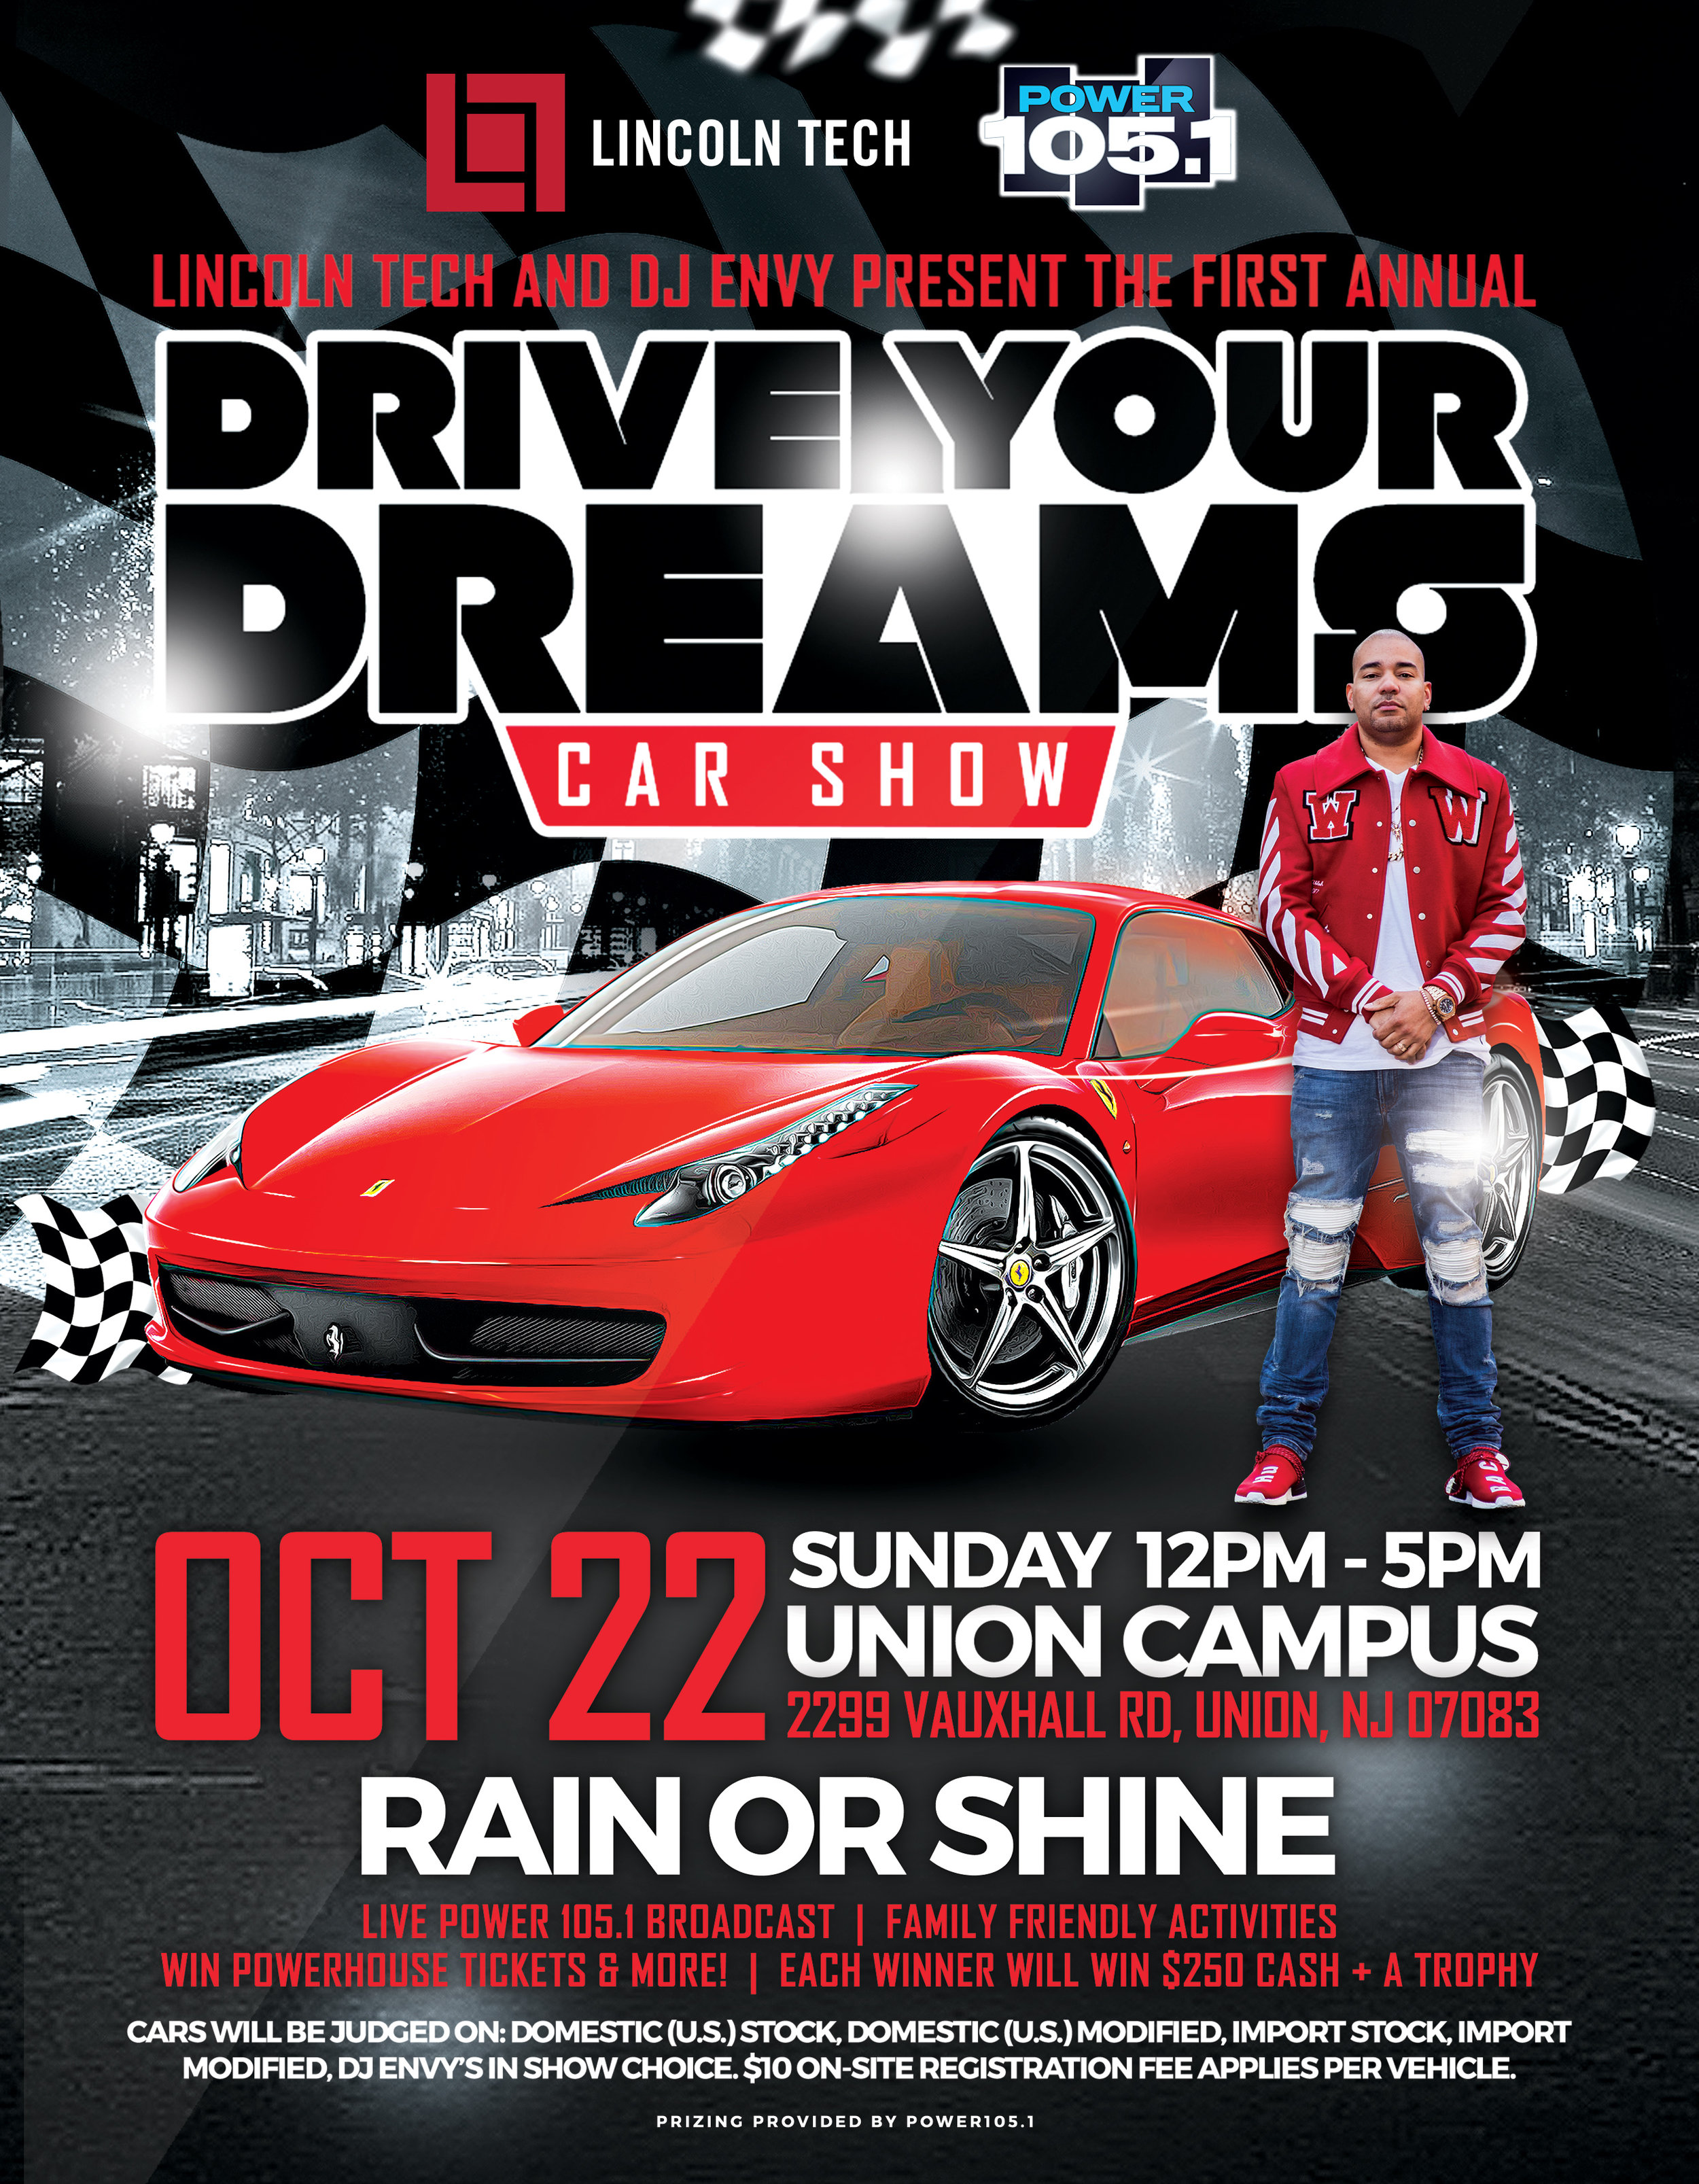 DriveYourDreams_Flyer.jpg